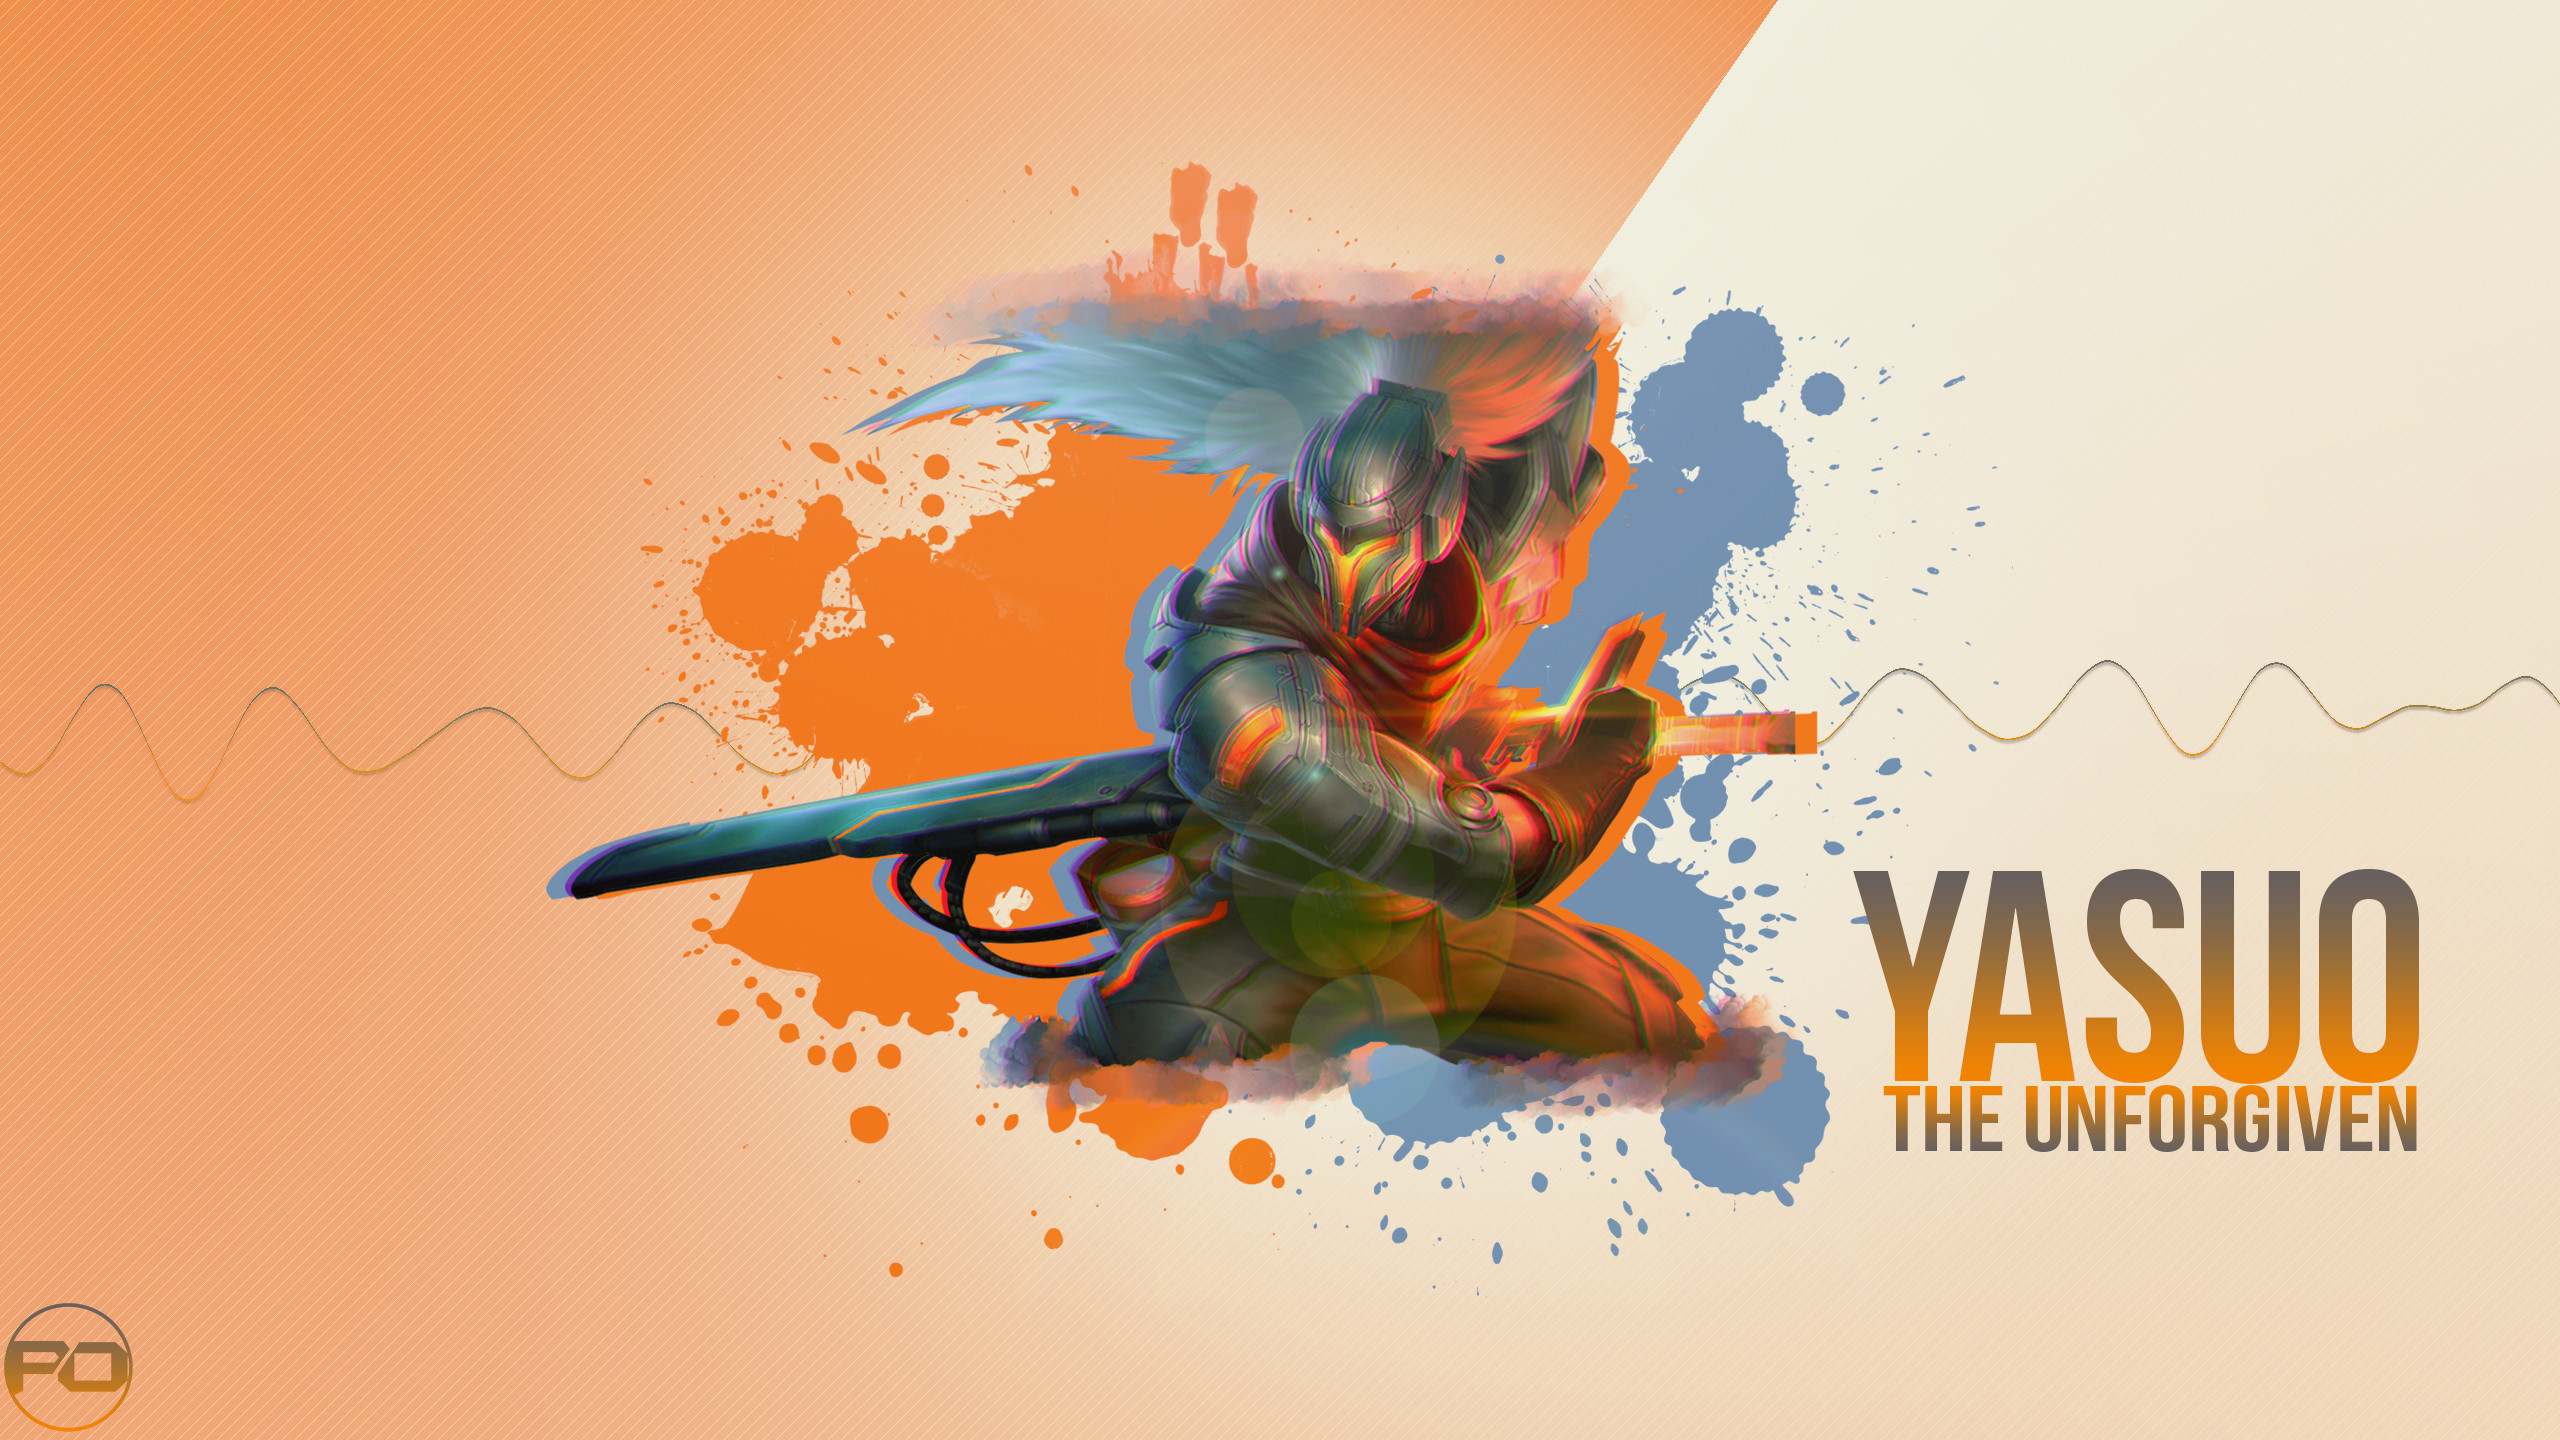 … Project Yasuo wallpaper l 2560 x 1440 by PobbleD